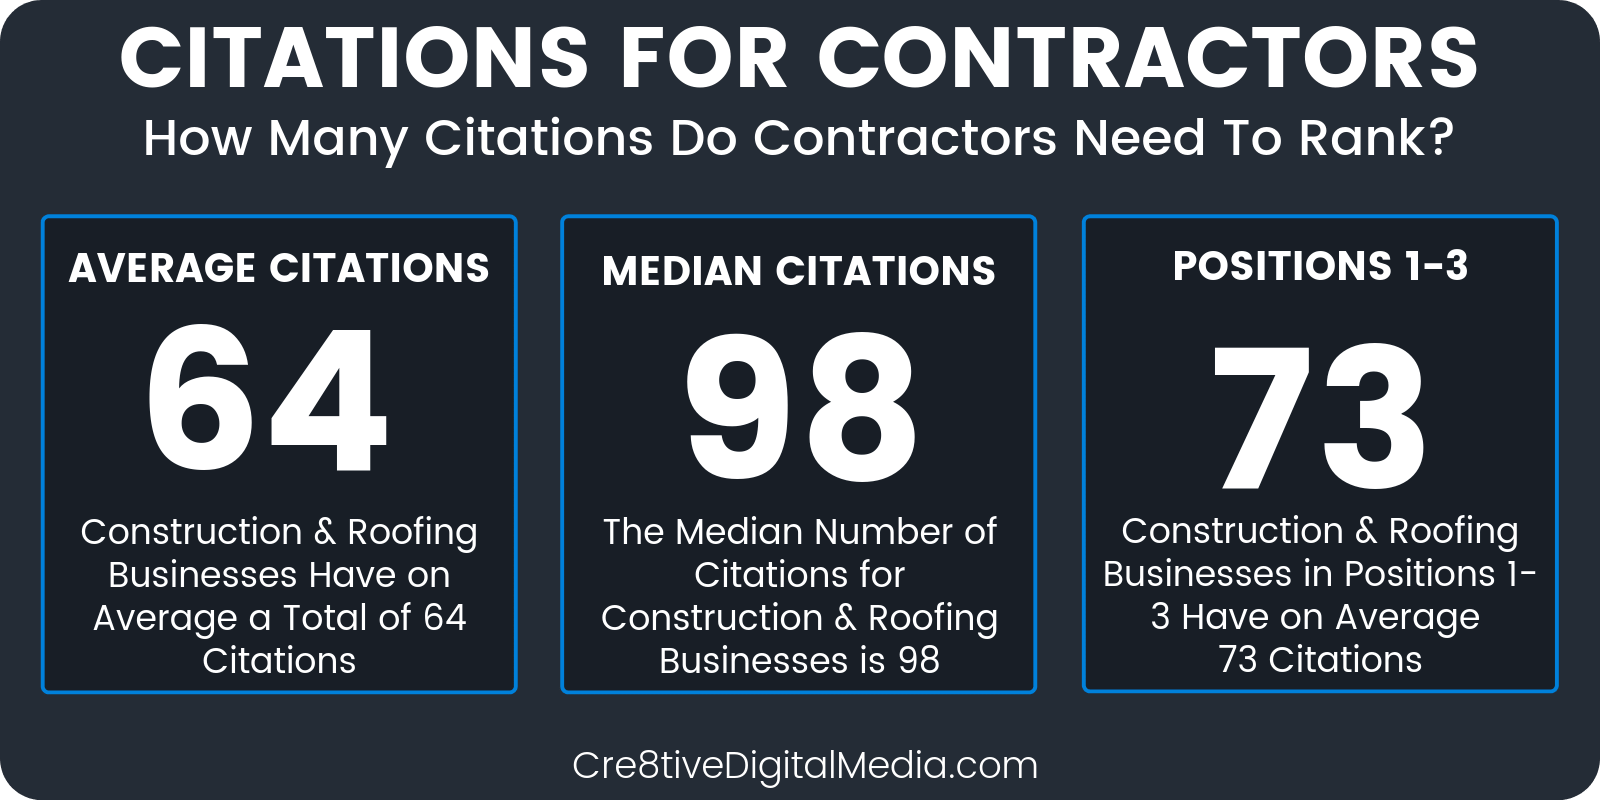 How many citations do Contractors need to rank?